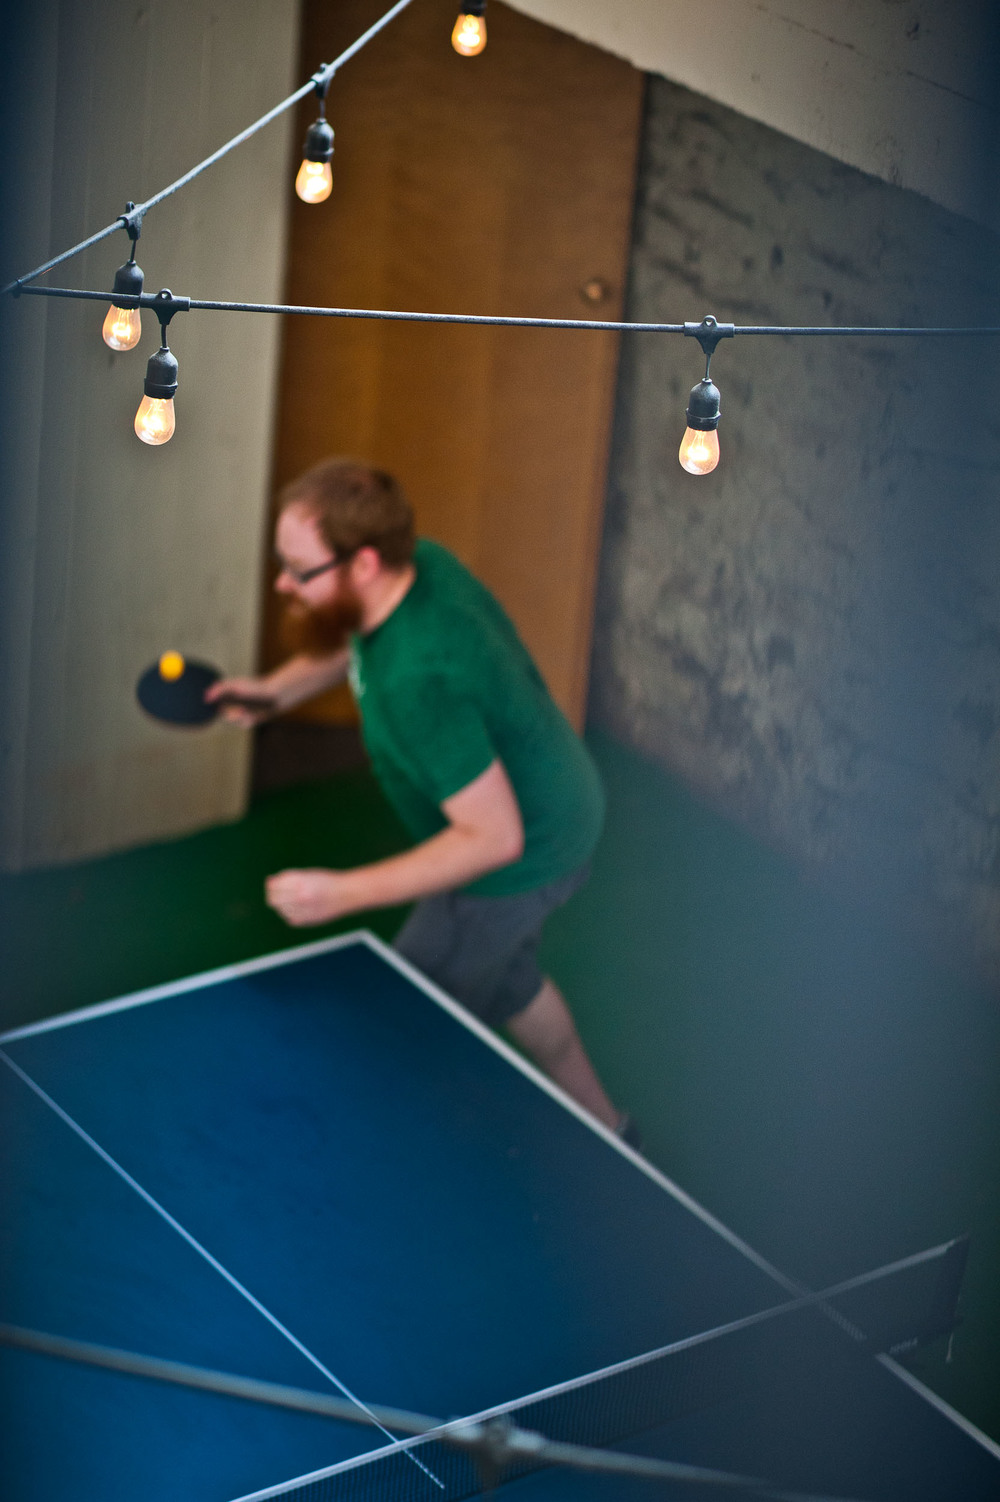 SDC Ping Pong Tournament 1.0 (Web Ready)_018.JPG